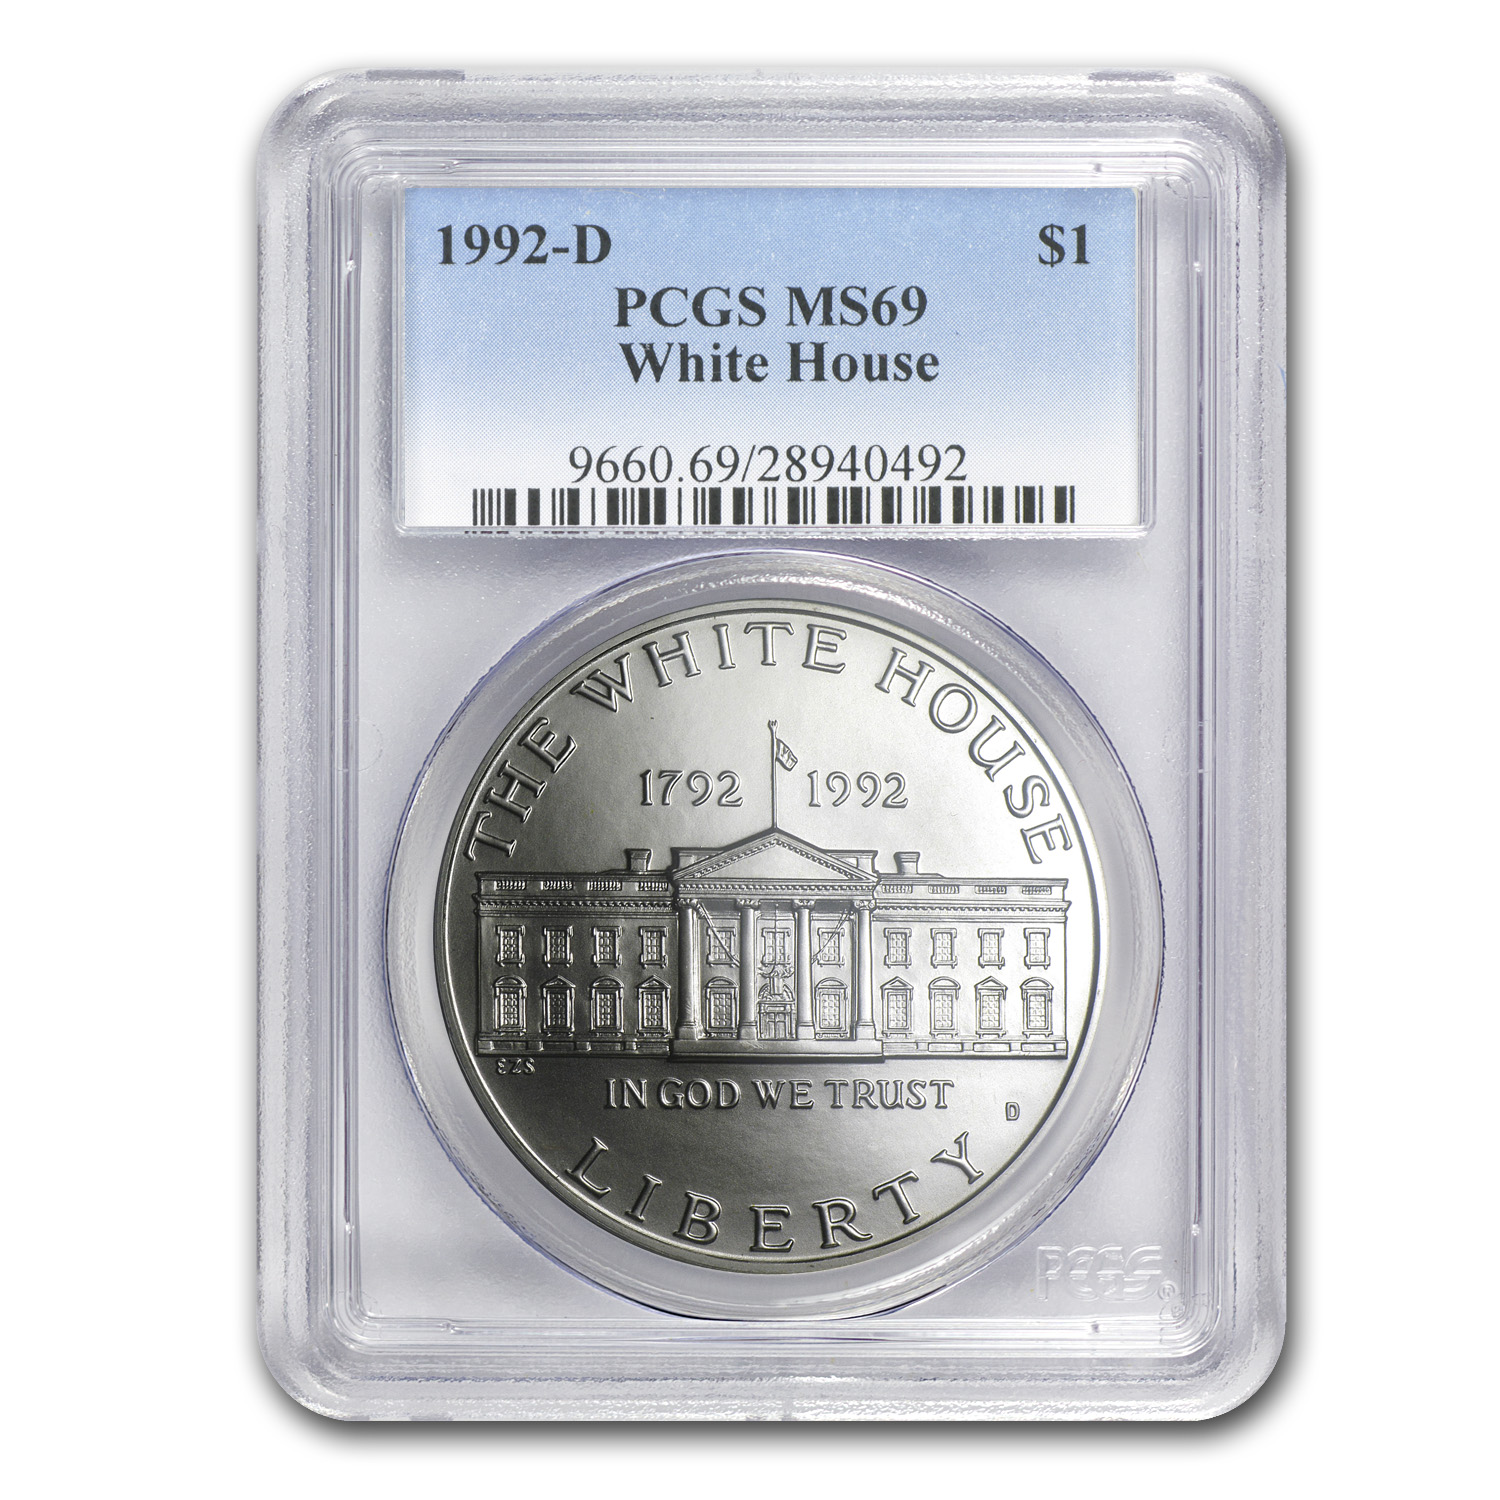 1992-D White House $1 Silver Commem MS-69 PCGS